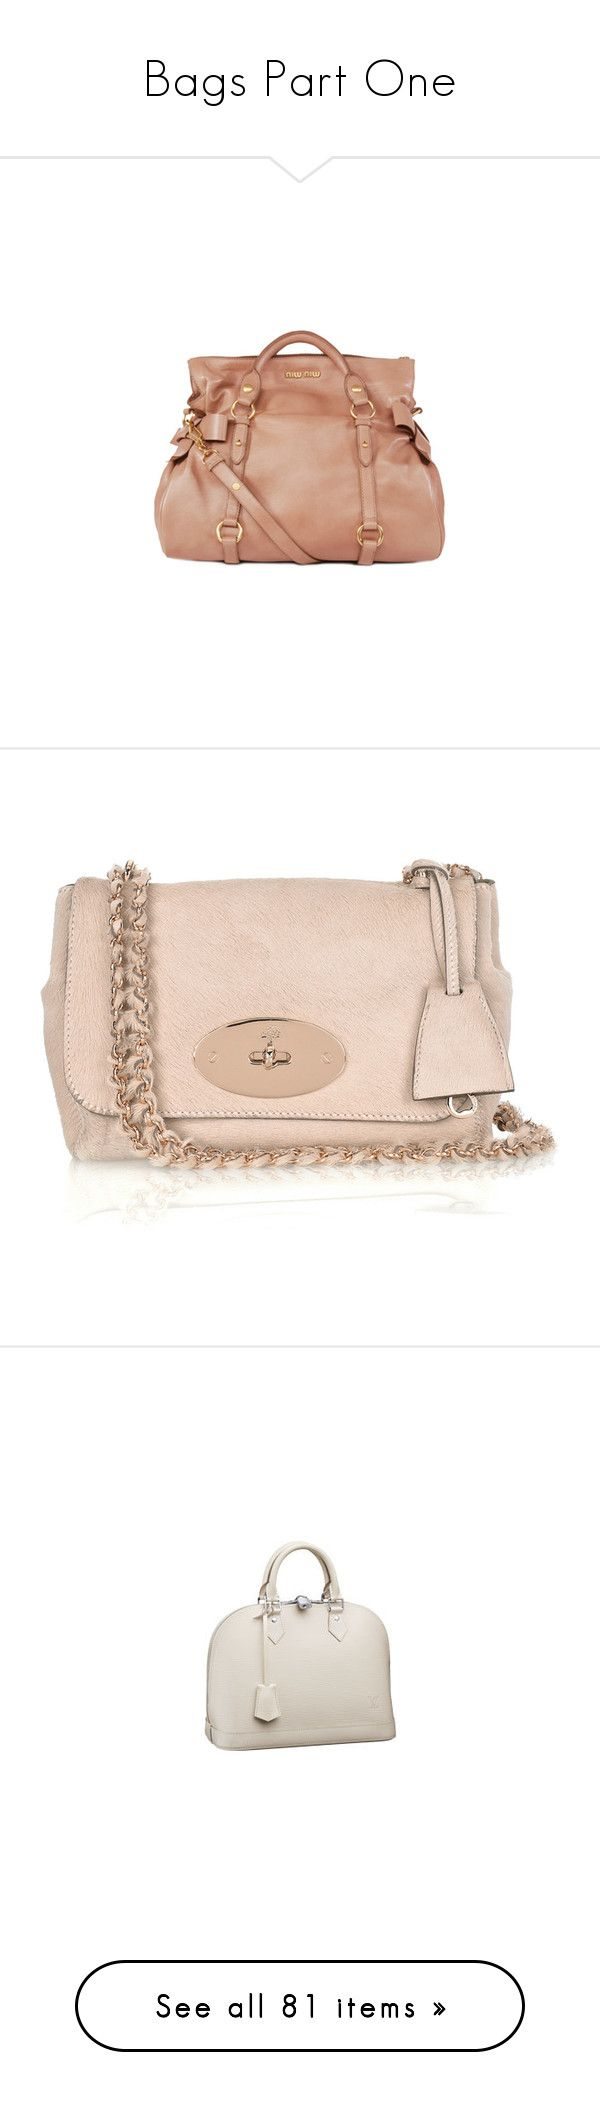 """""""Bags Part One"""" by k-amelia on Polyvore featuring bags, handbags, tote bags, purses, bolsas, borse, man bag, beige purse, purse tote and beige tote"""